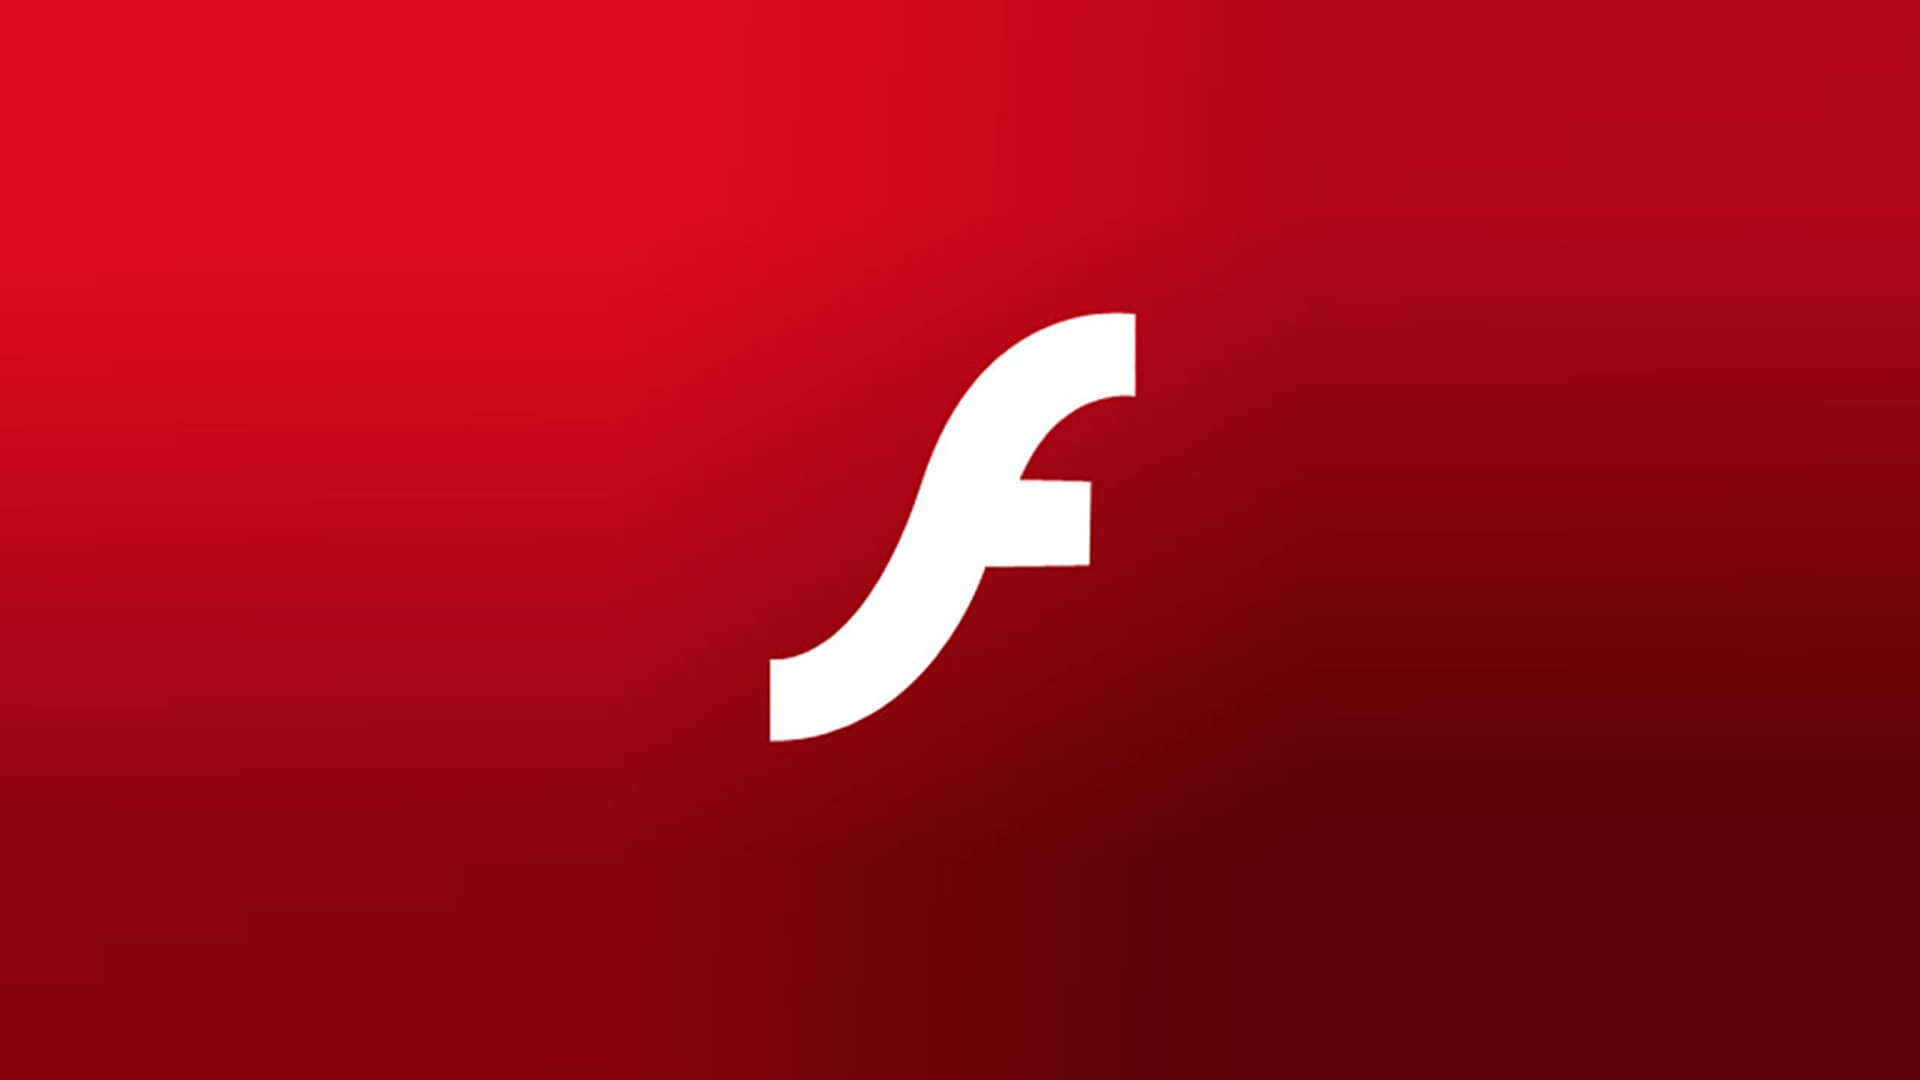 Don't Fear the Reaper: Adobe Flash Will Officially be Dead by the End of 2020